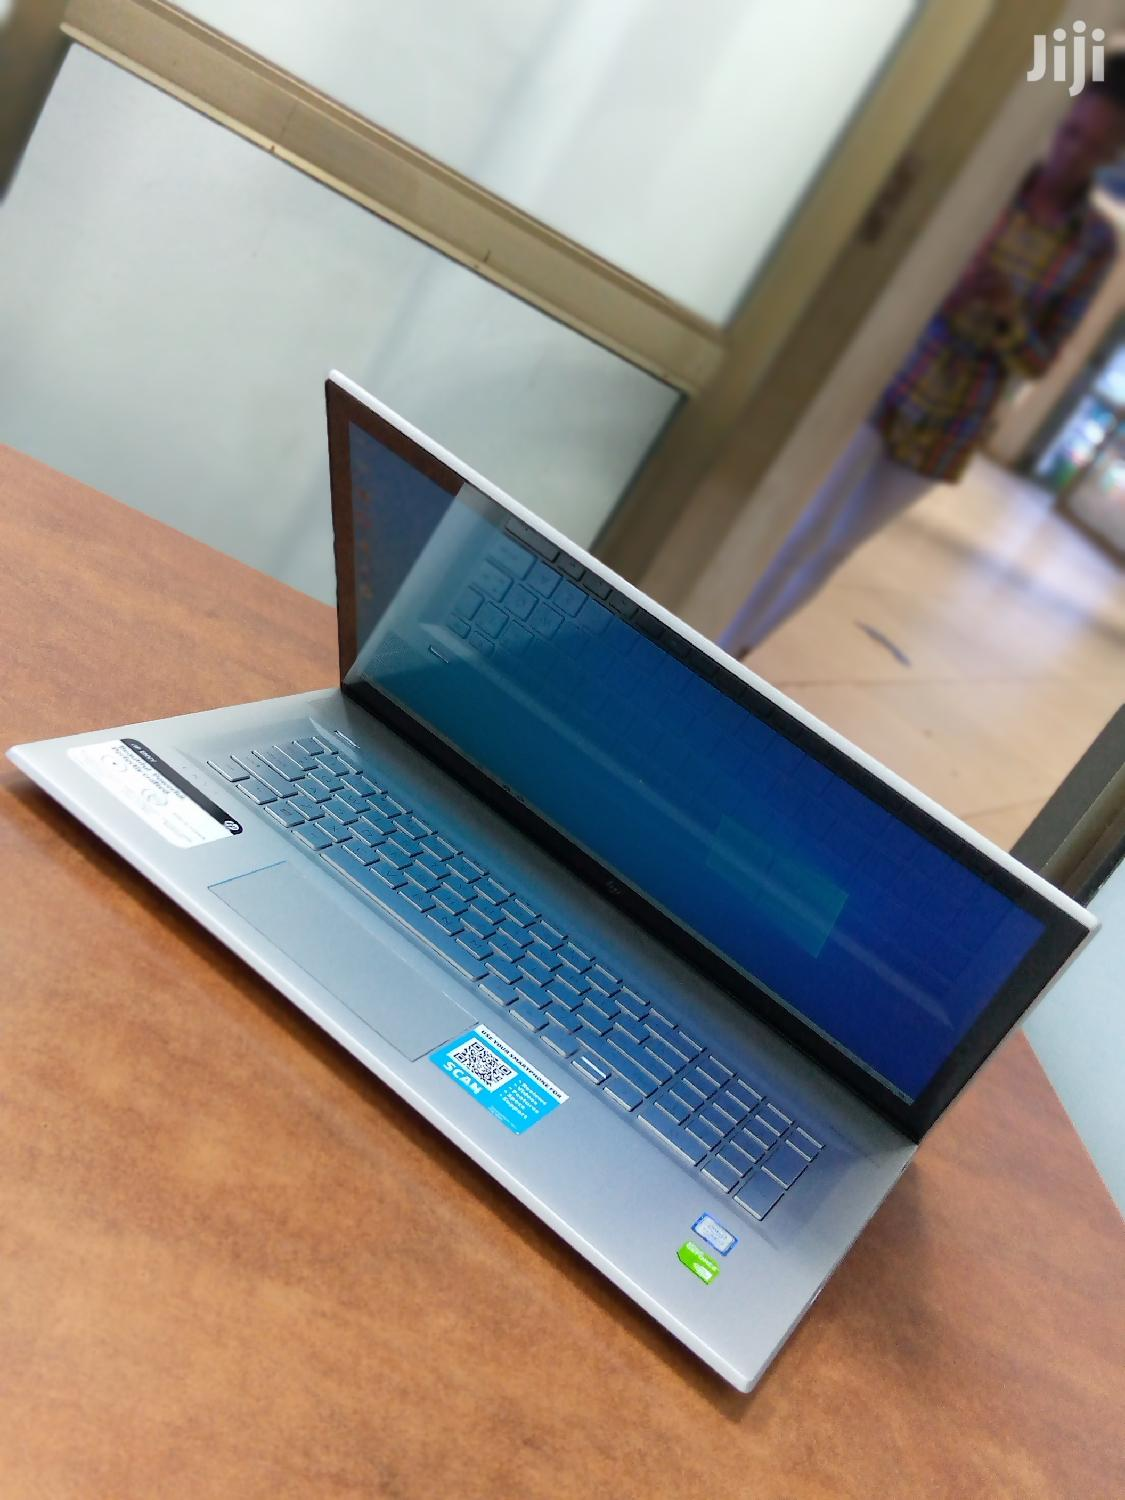 New Laptop HP Envy 17 12GB Intel Core i7 SSD 1T | Laptops & Computers for sale in Kampala, Central Region, Uganda